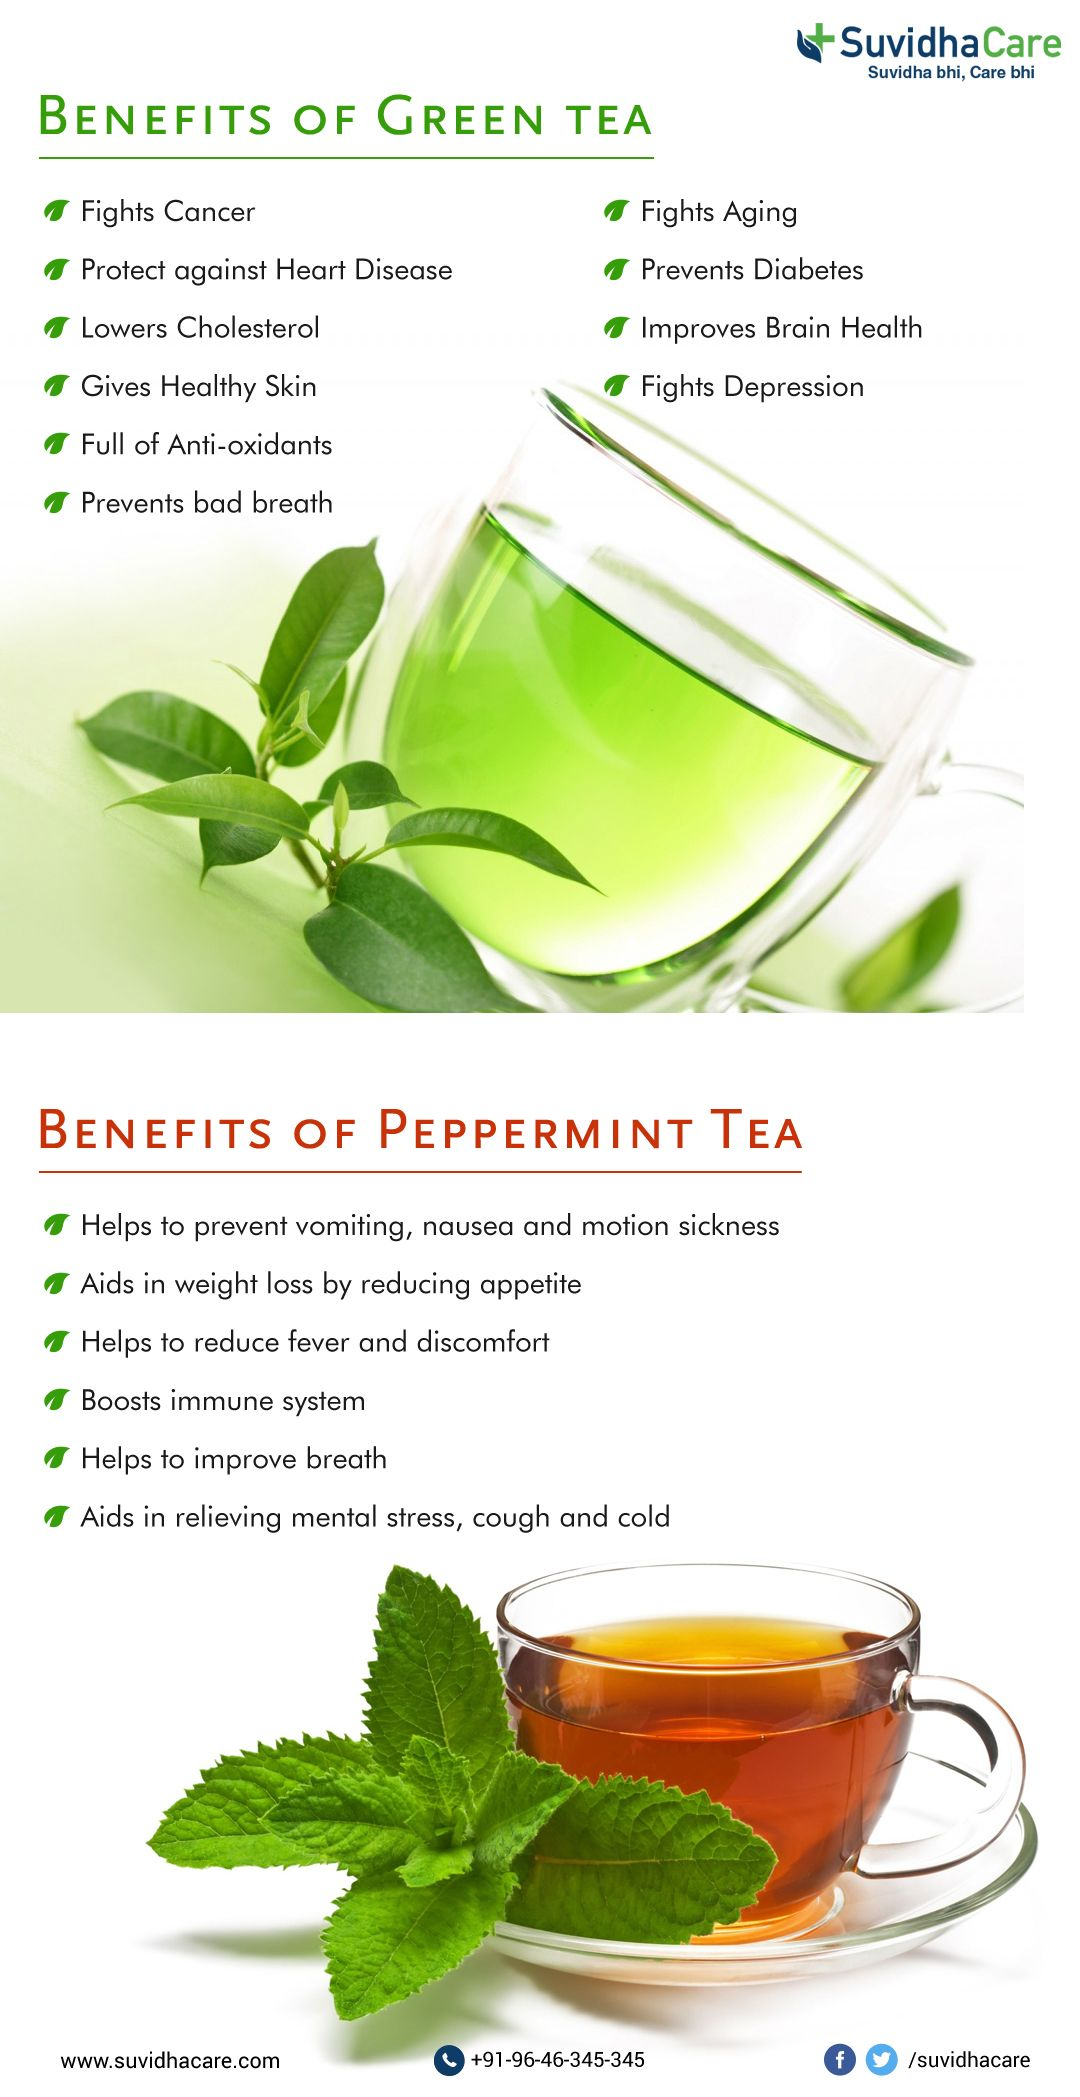 health benefits of green tea & peppermint tea #fightcancer